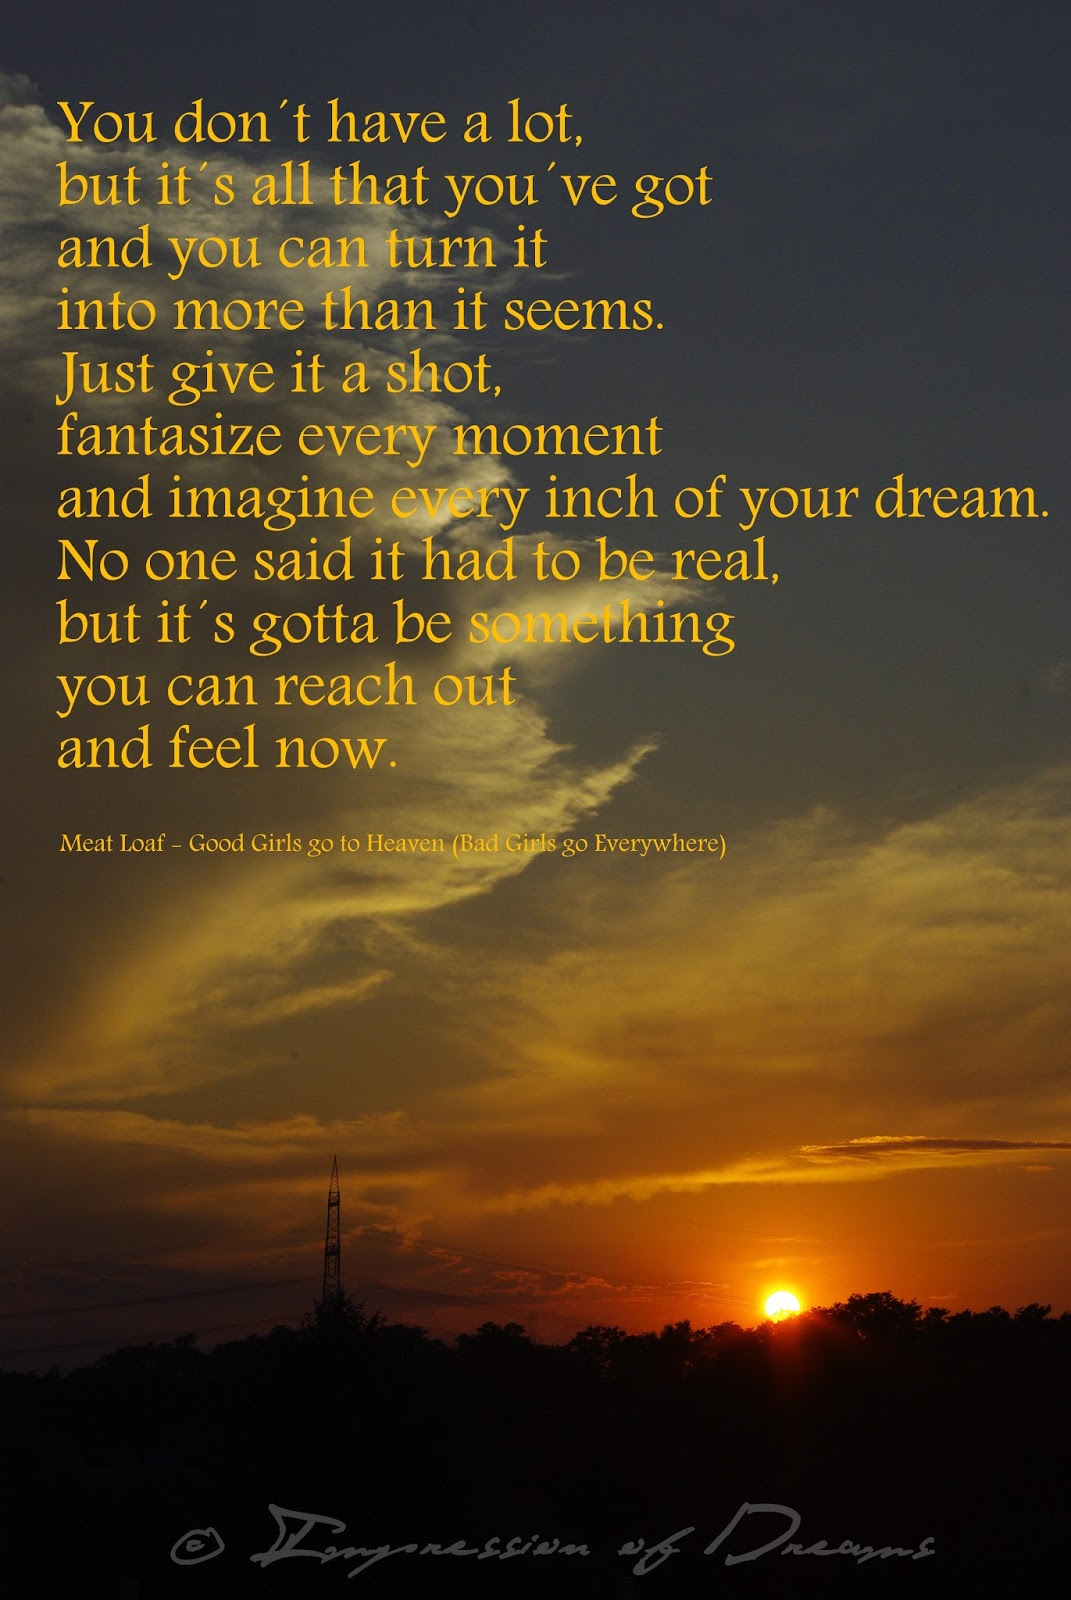 You don´t have a lot, but it´s all that you´ve got and you can turn it into more than it seems. Just give it a shot, fantasize every moment and imagine every inch of your dream. No one said it had to be real, but it´s gotta be something you can reach out and feel now.